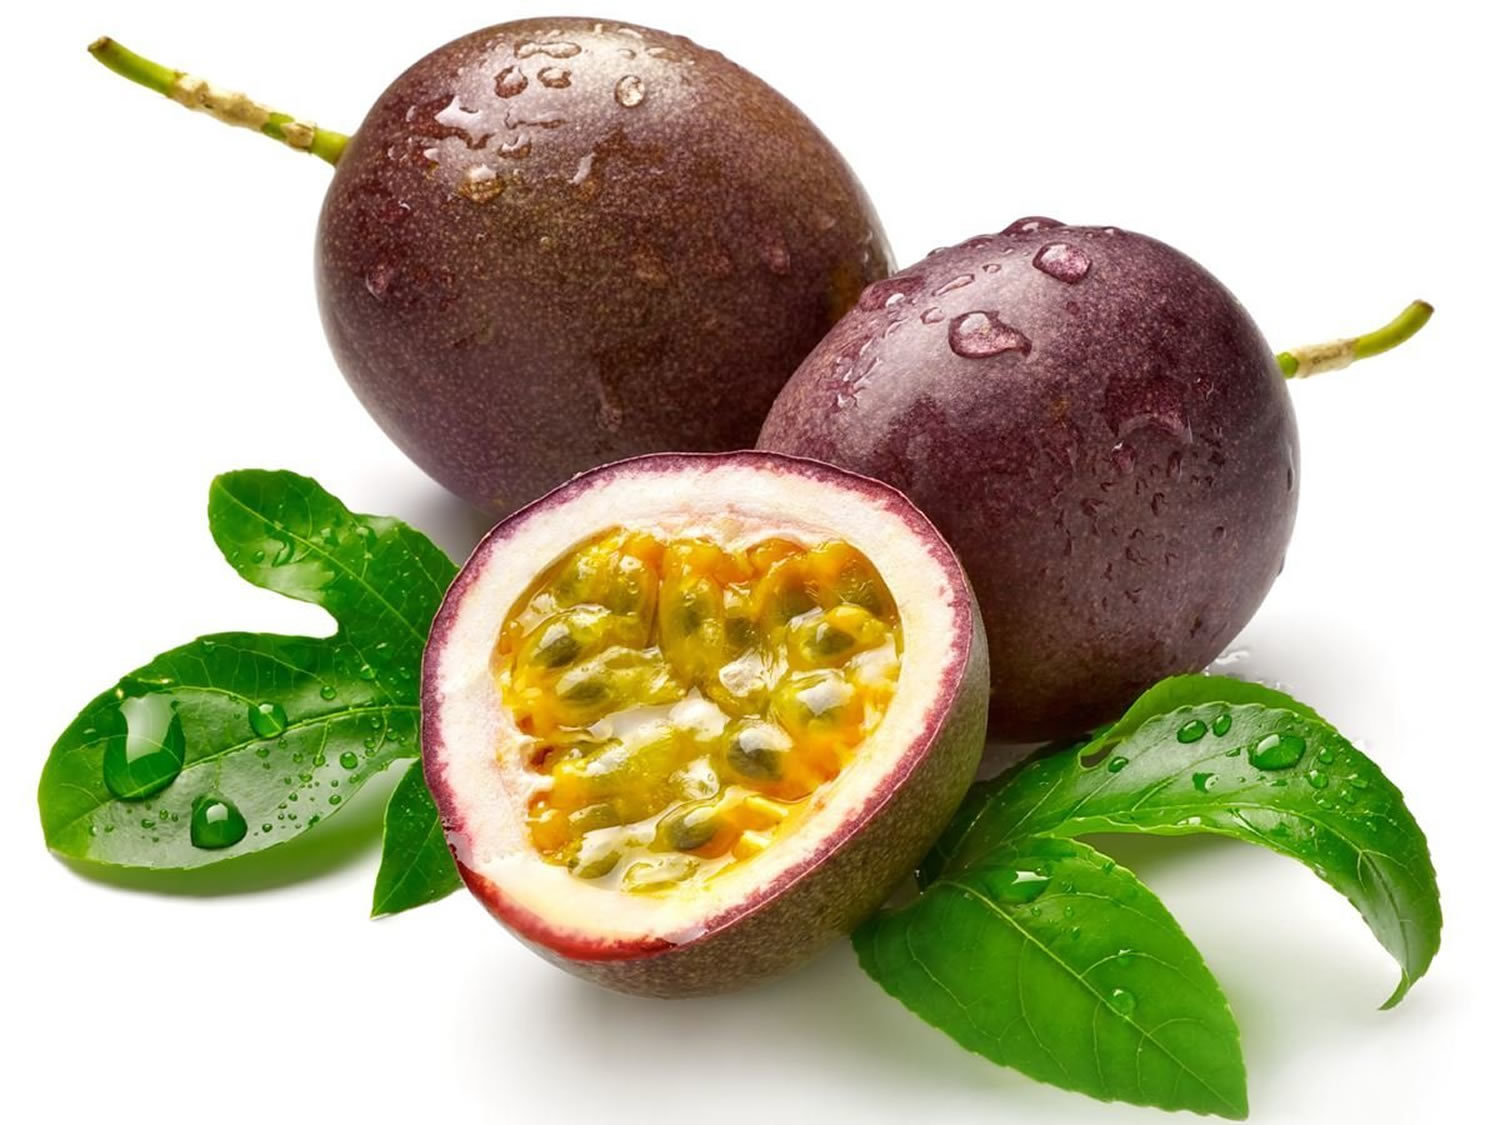 passion-fruit.jpg